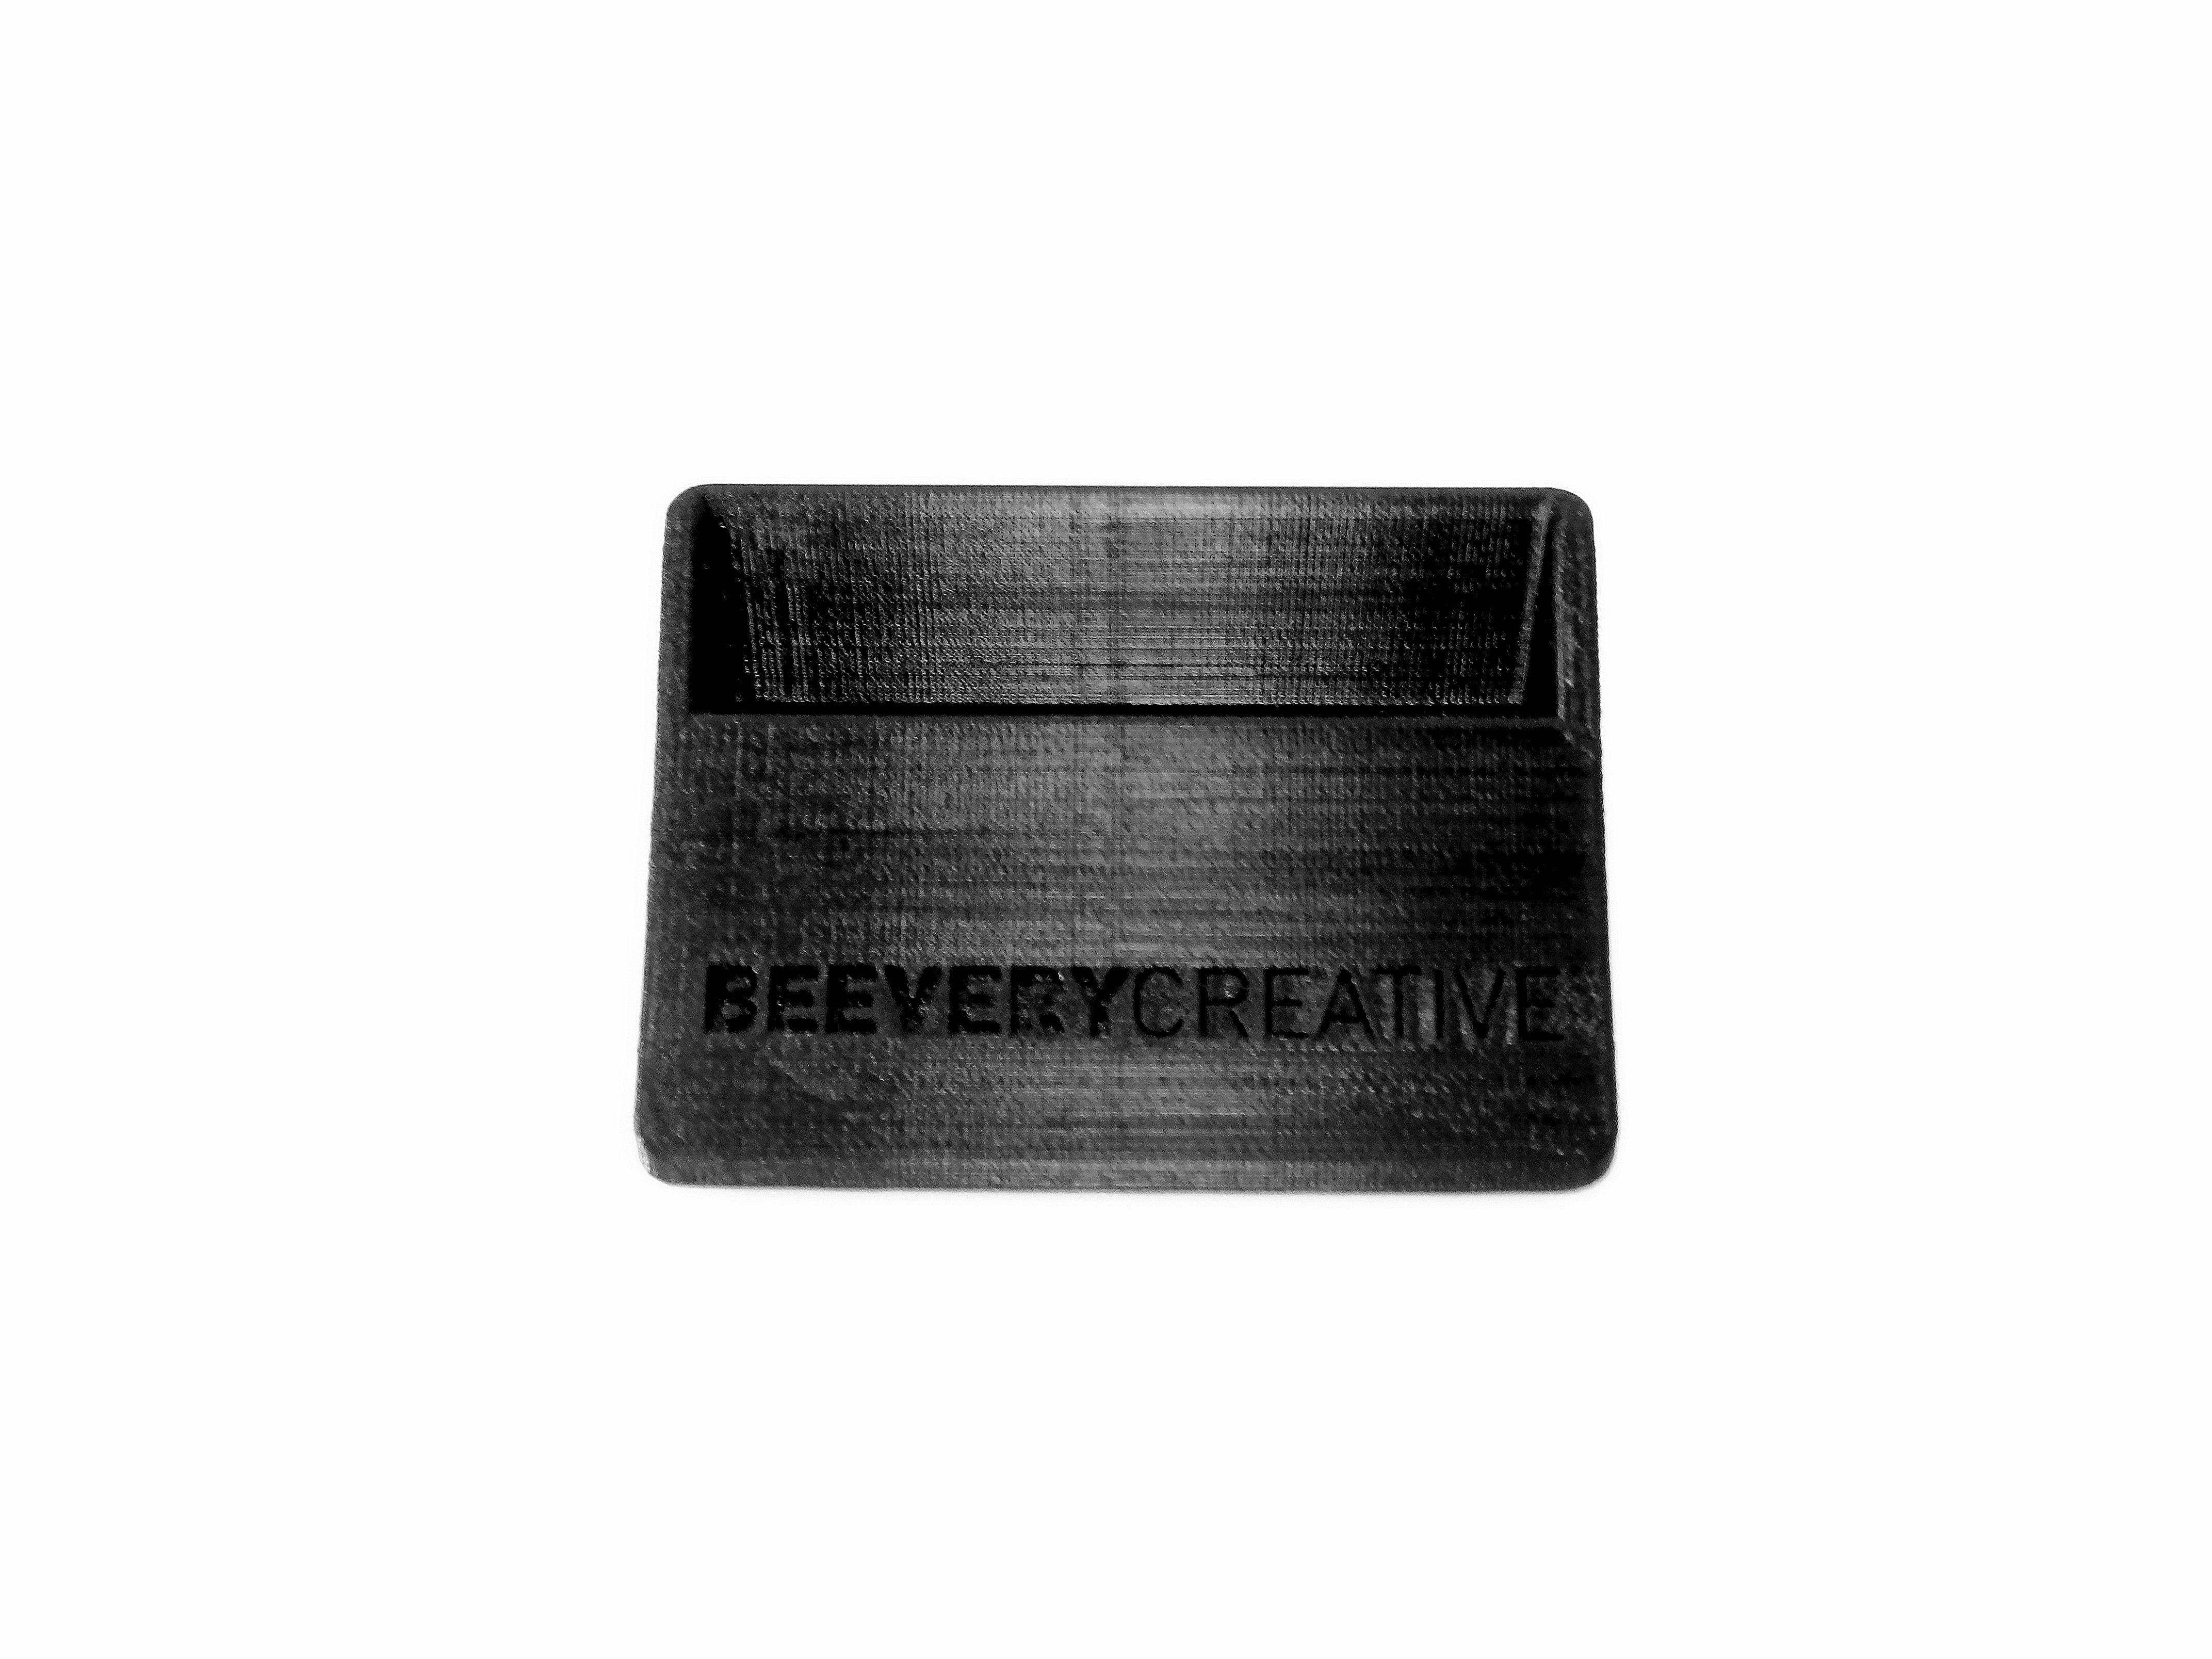 PA100012.JPG Download free STL file Business card holder • 3D printer object, BEEVERYCREATIVE